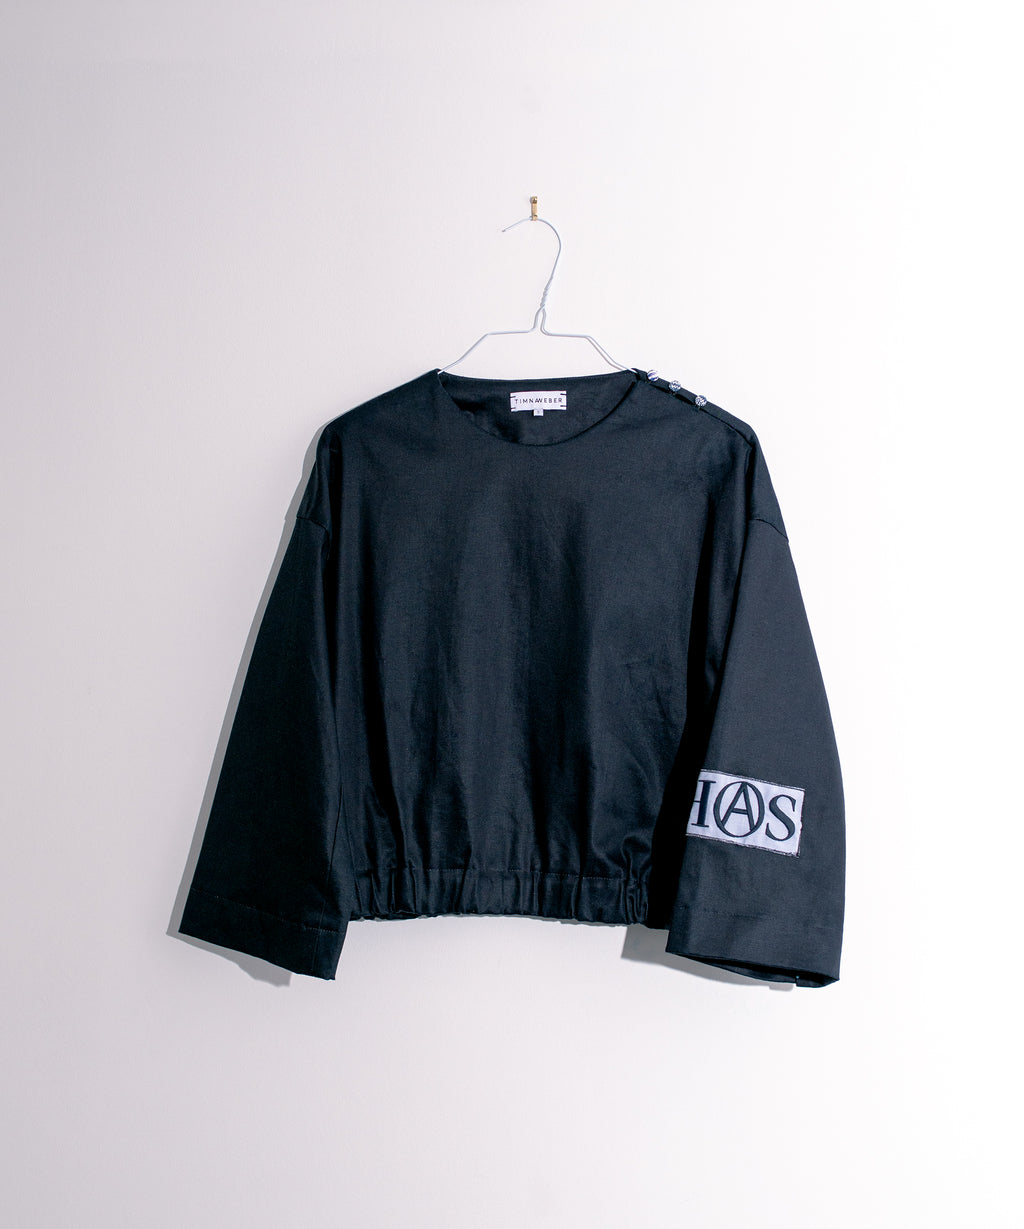 Chaos Long Sleeve Top